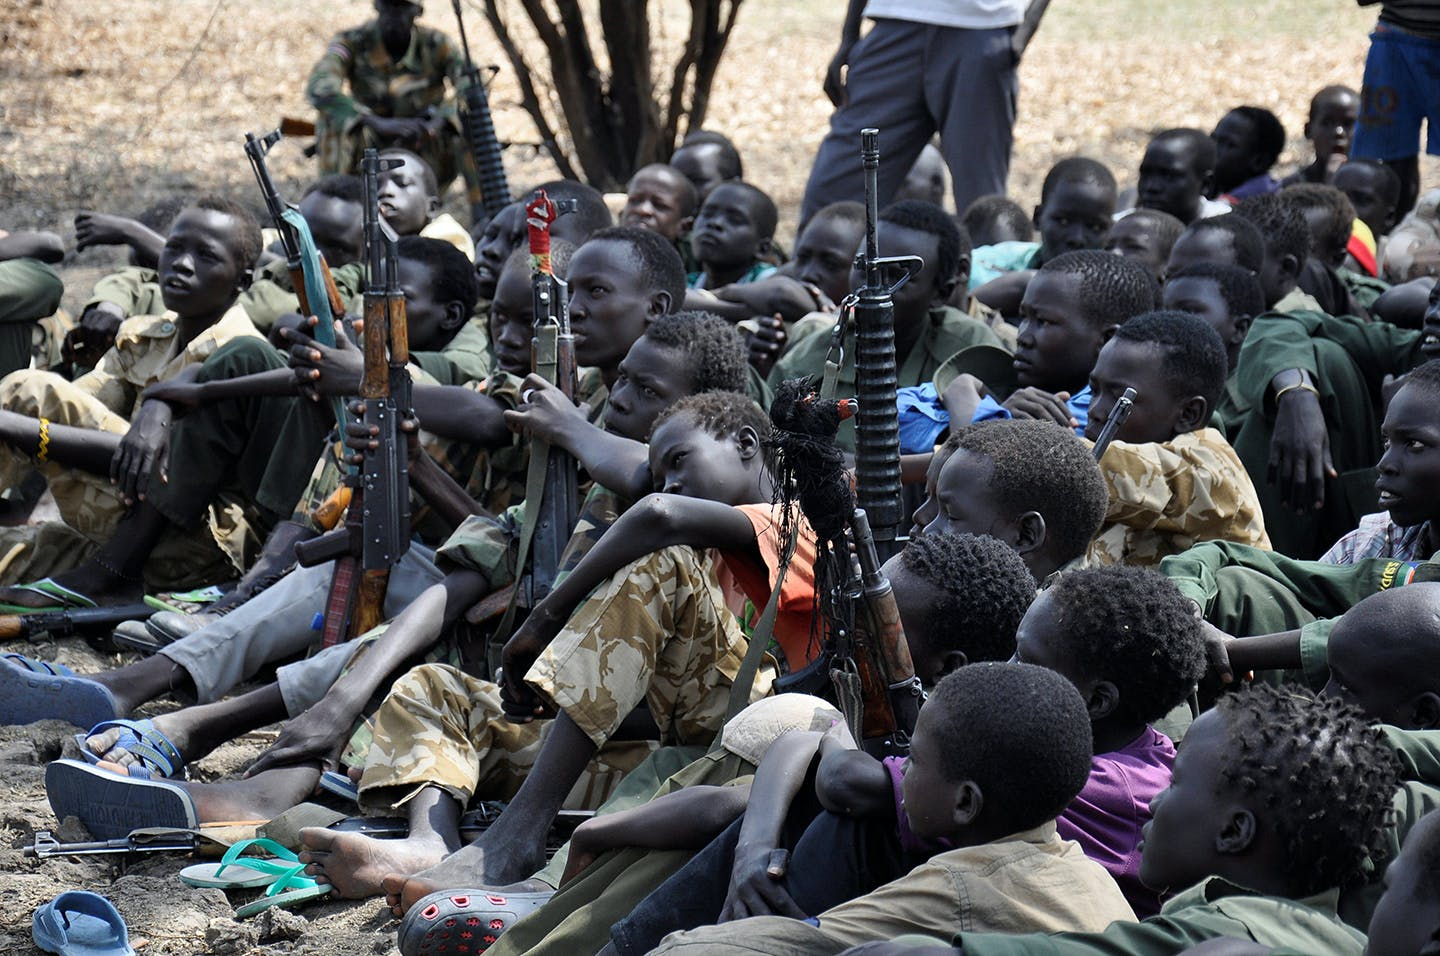 Modern Day Slavery In Libya >> Hillary Clinton's Pass to South Sudan on Child Soldiers